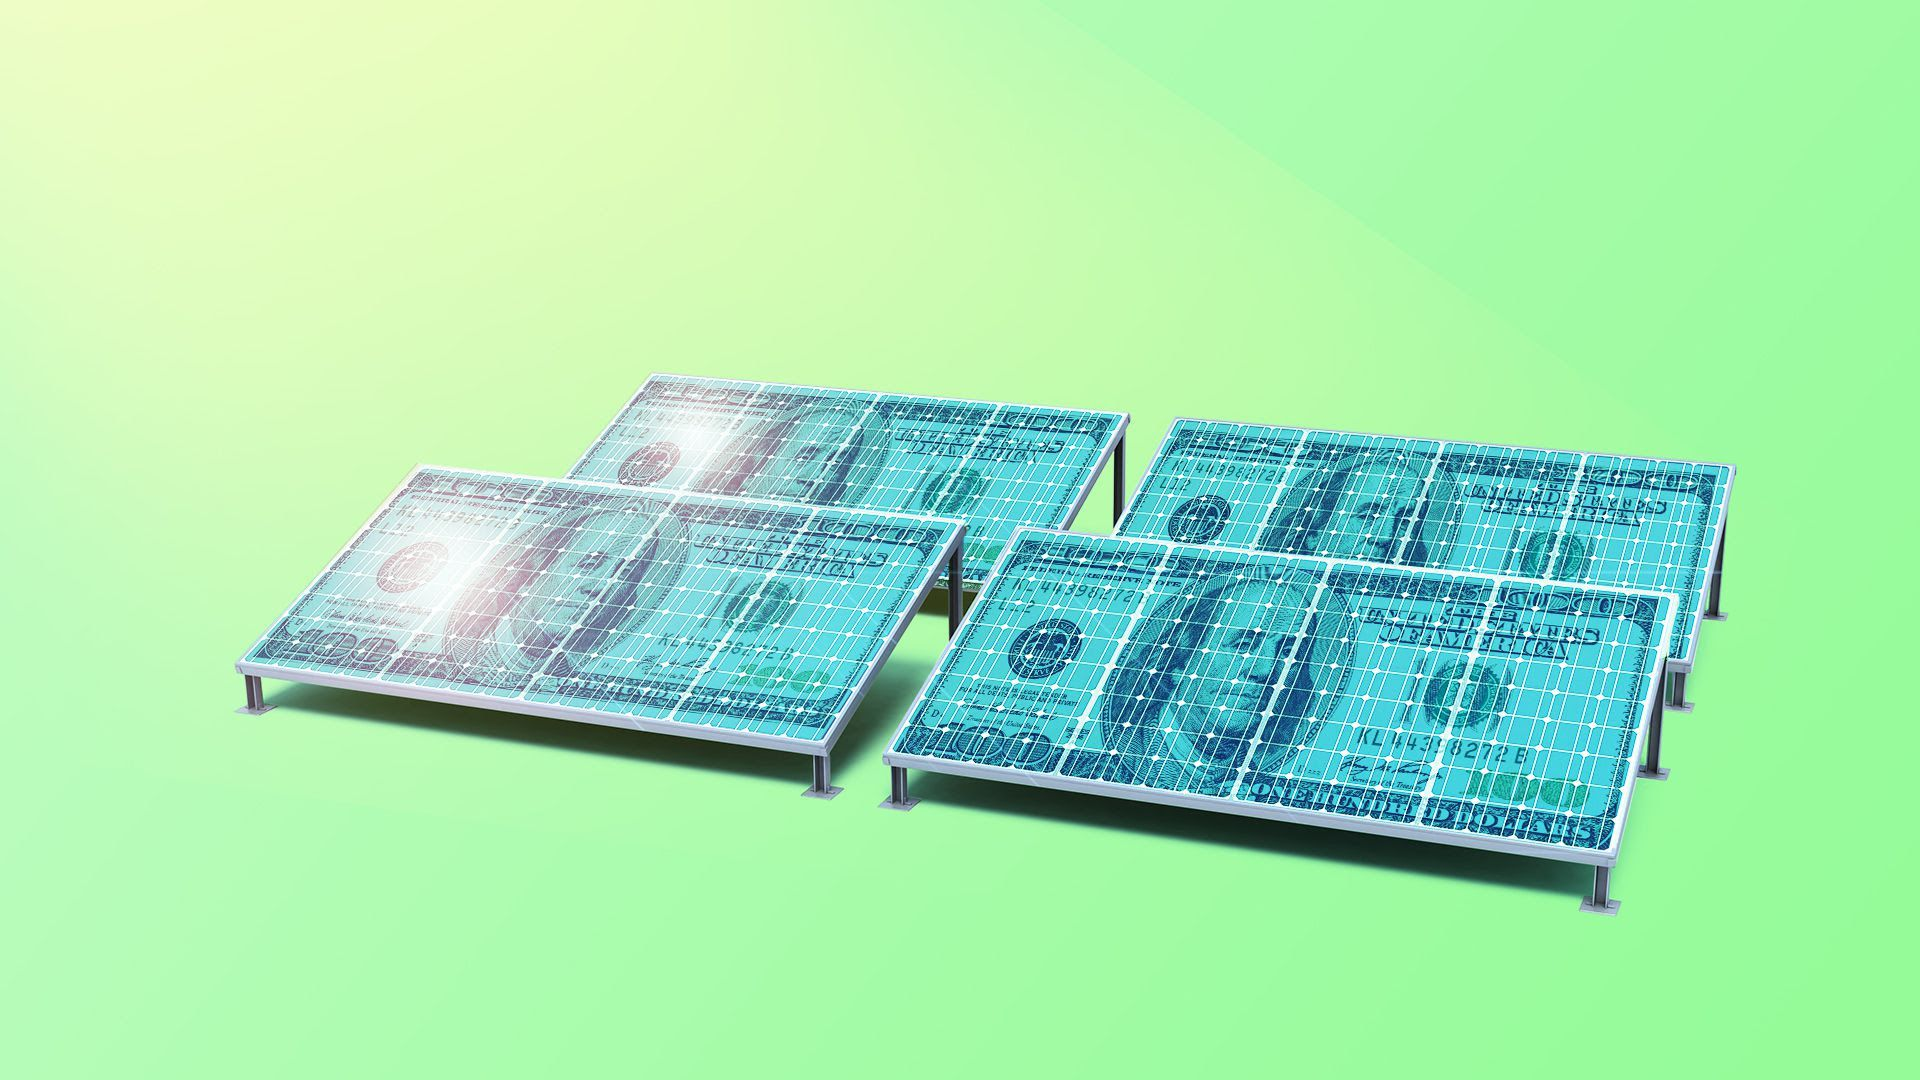 Illustration of solar panels with dollar bills in them